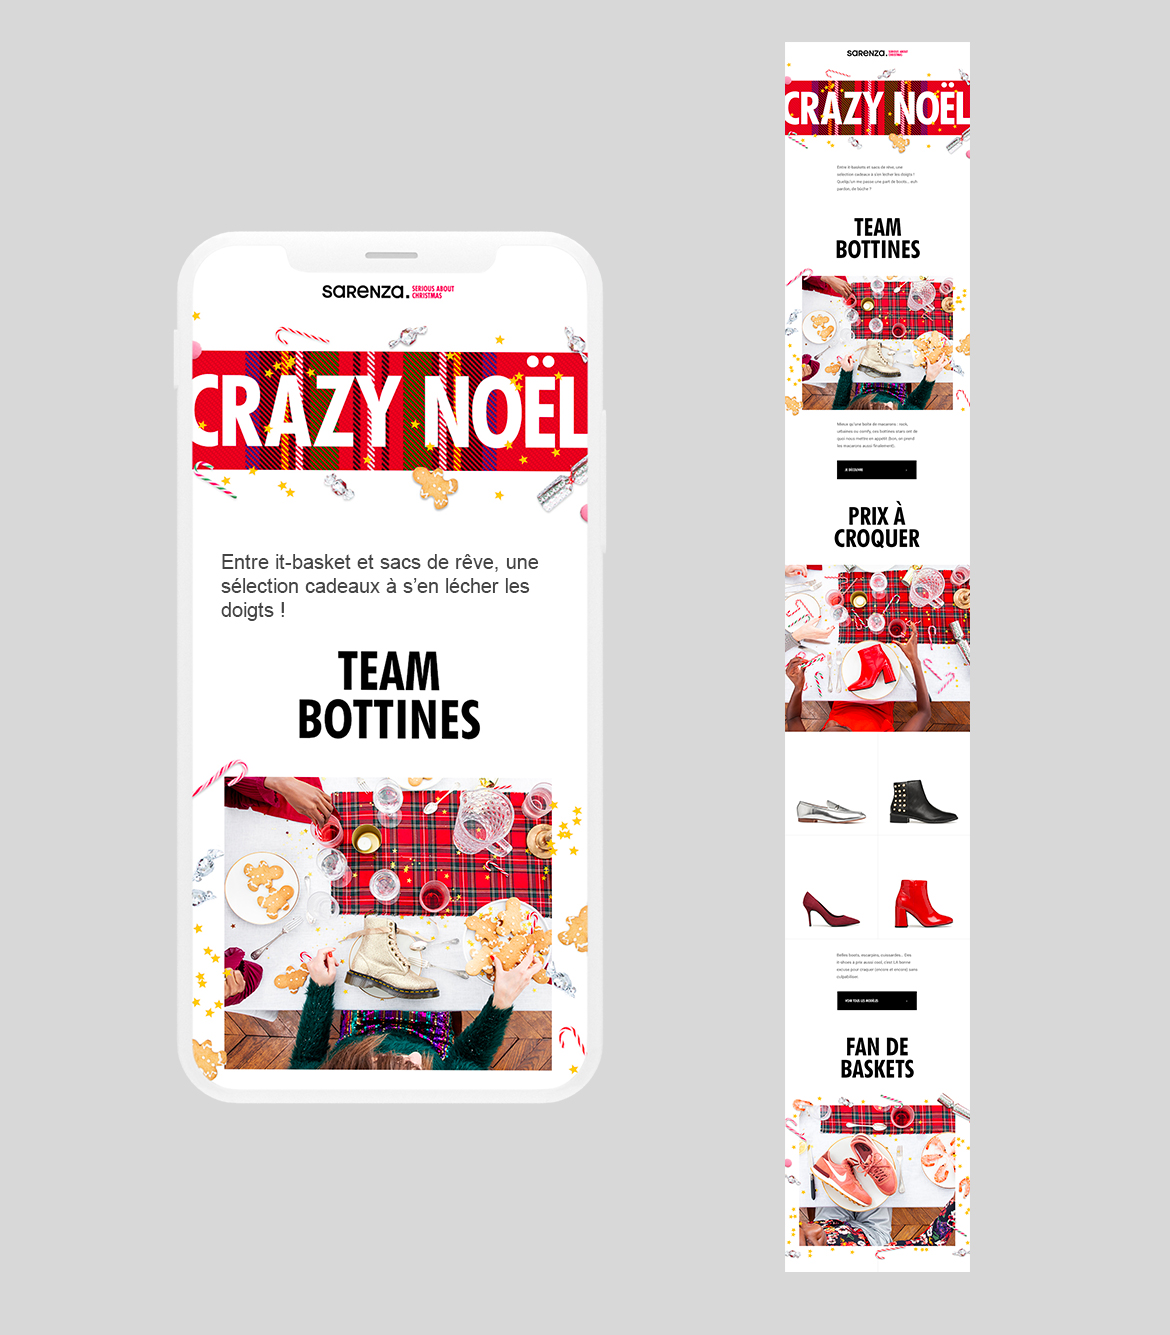 Newsletter Crazy Noël